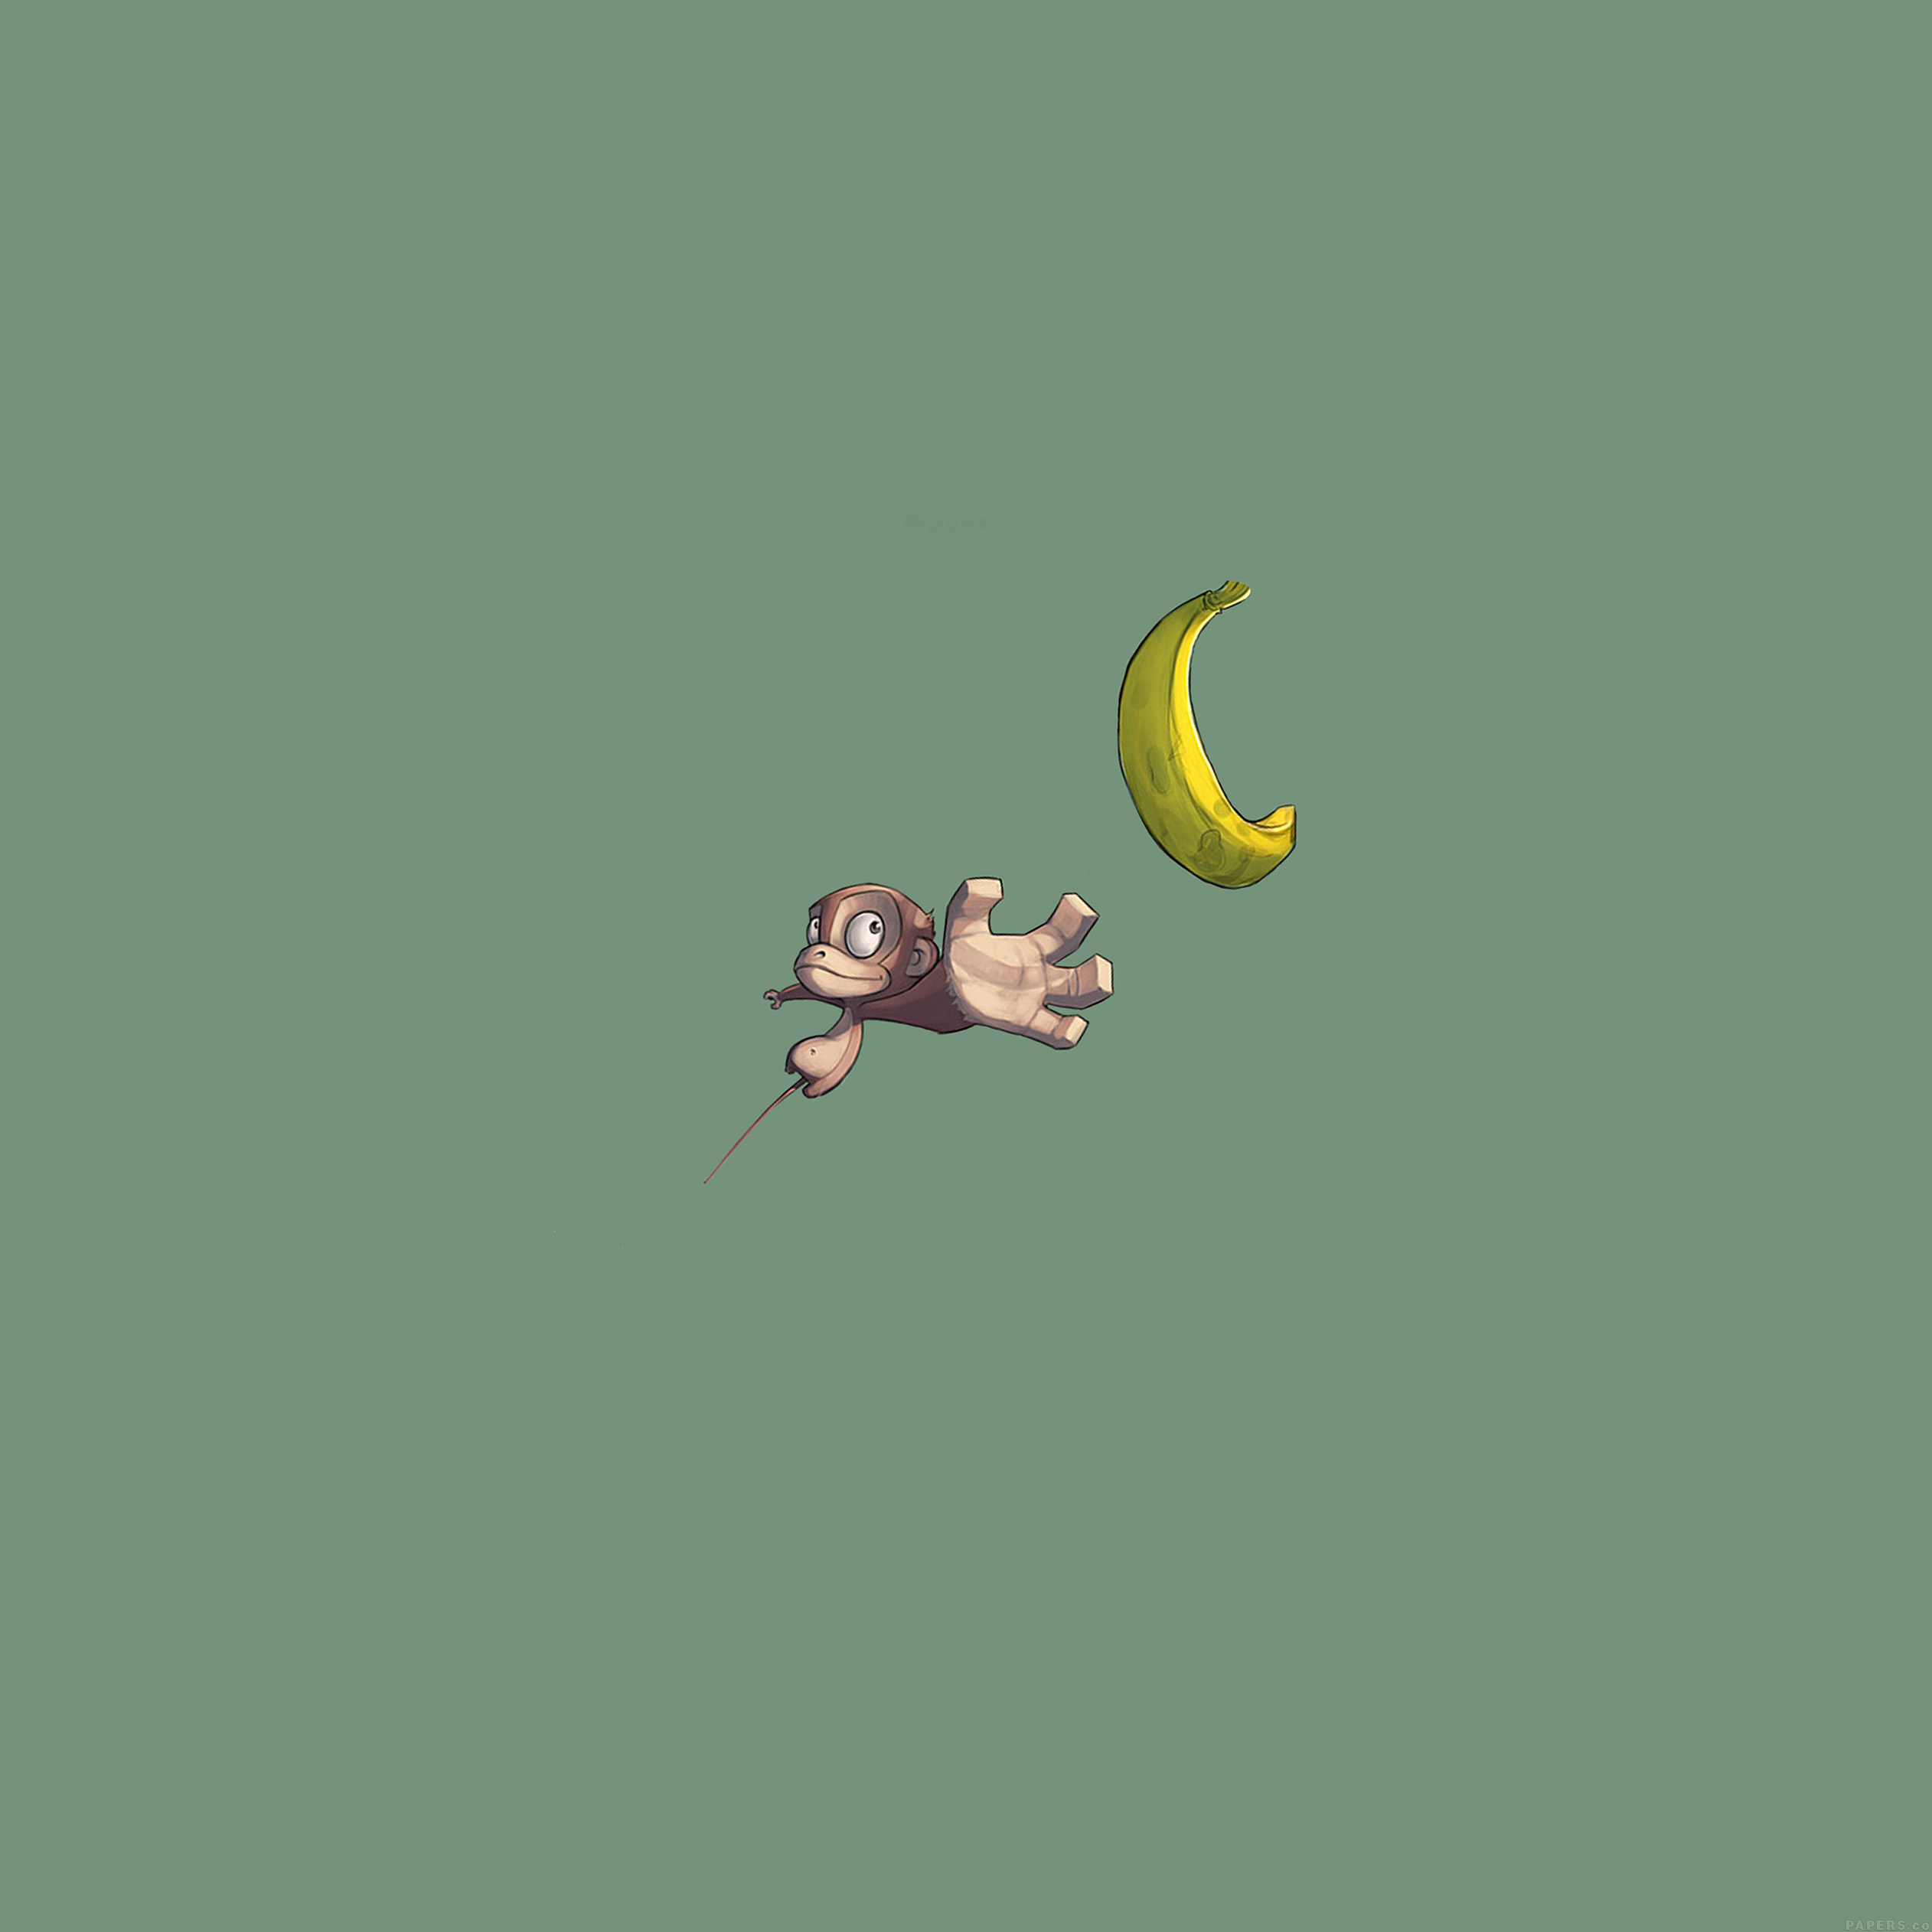 monkey-banana-love-illust-art-minimal-9-wallpaper